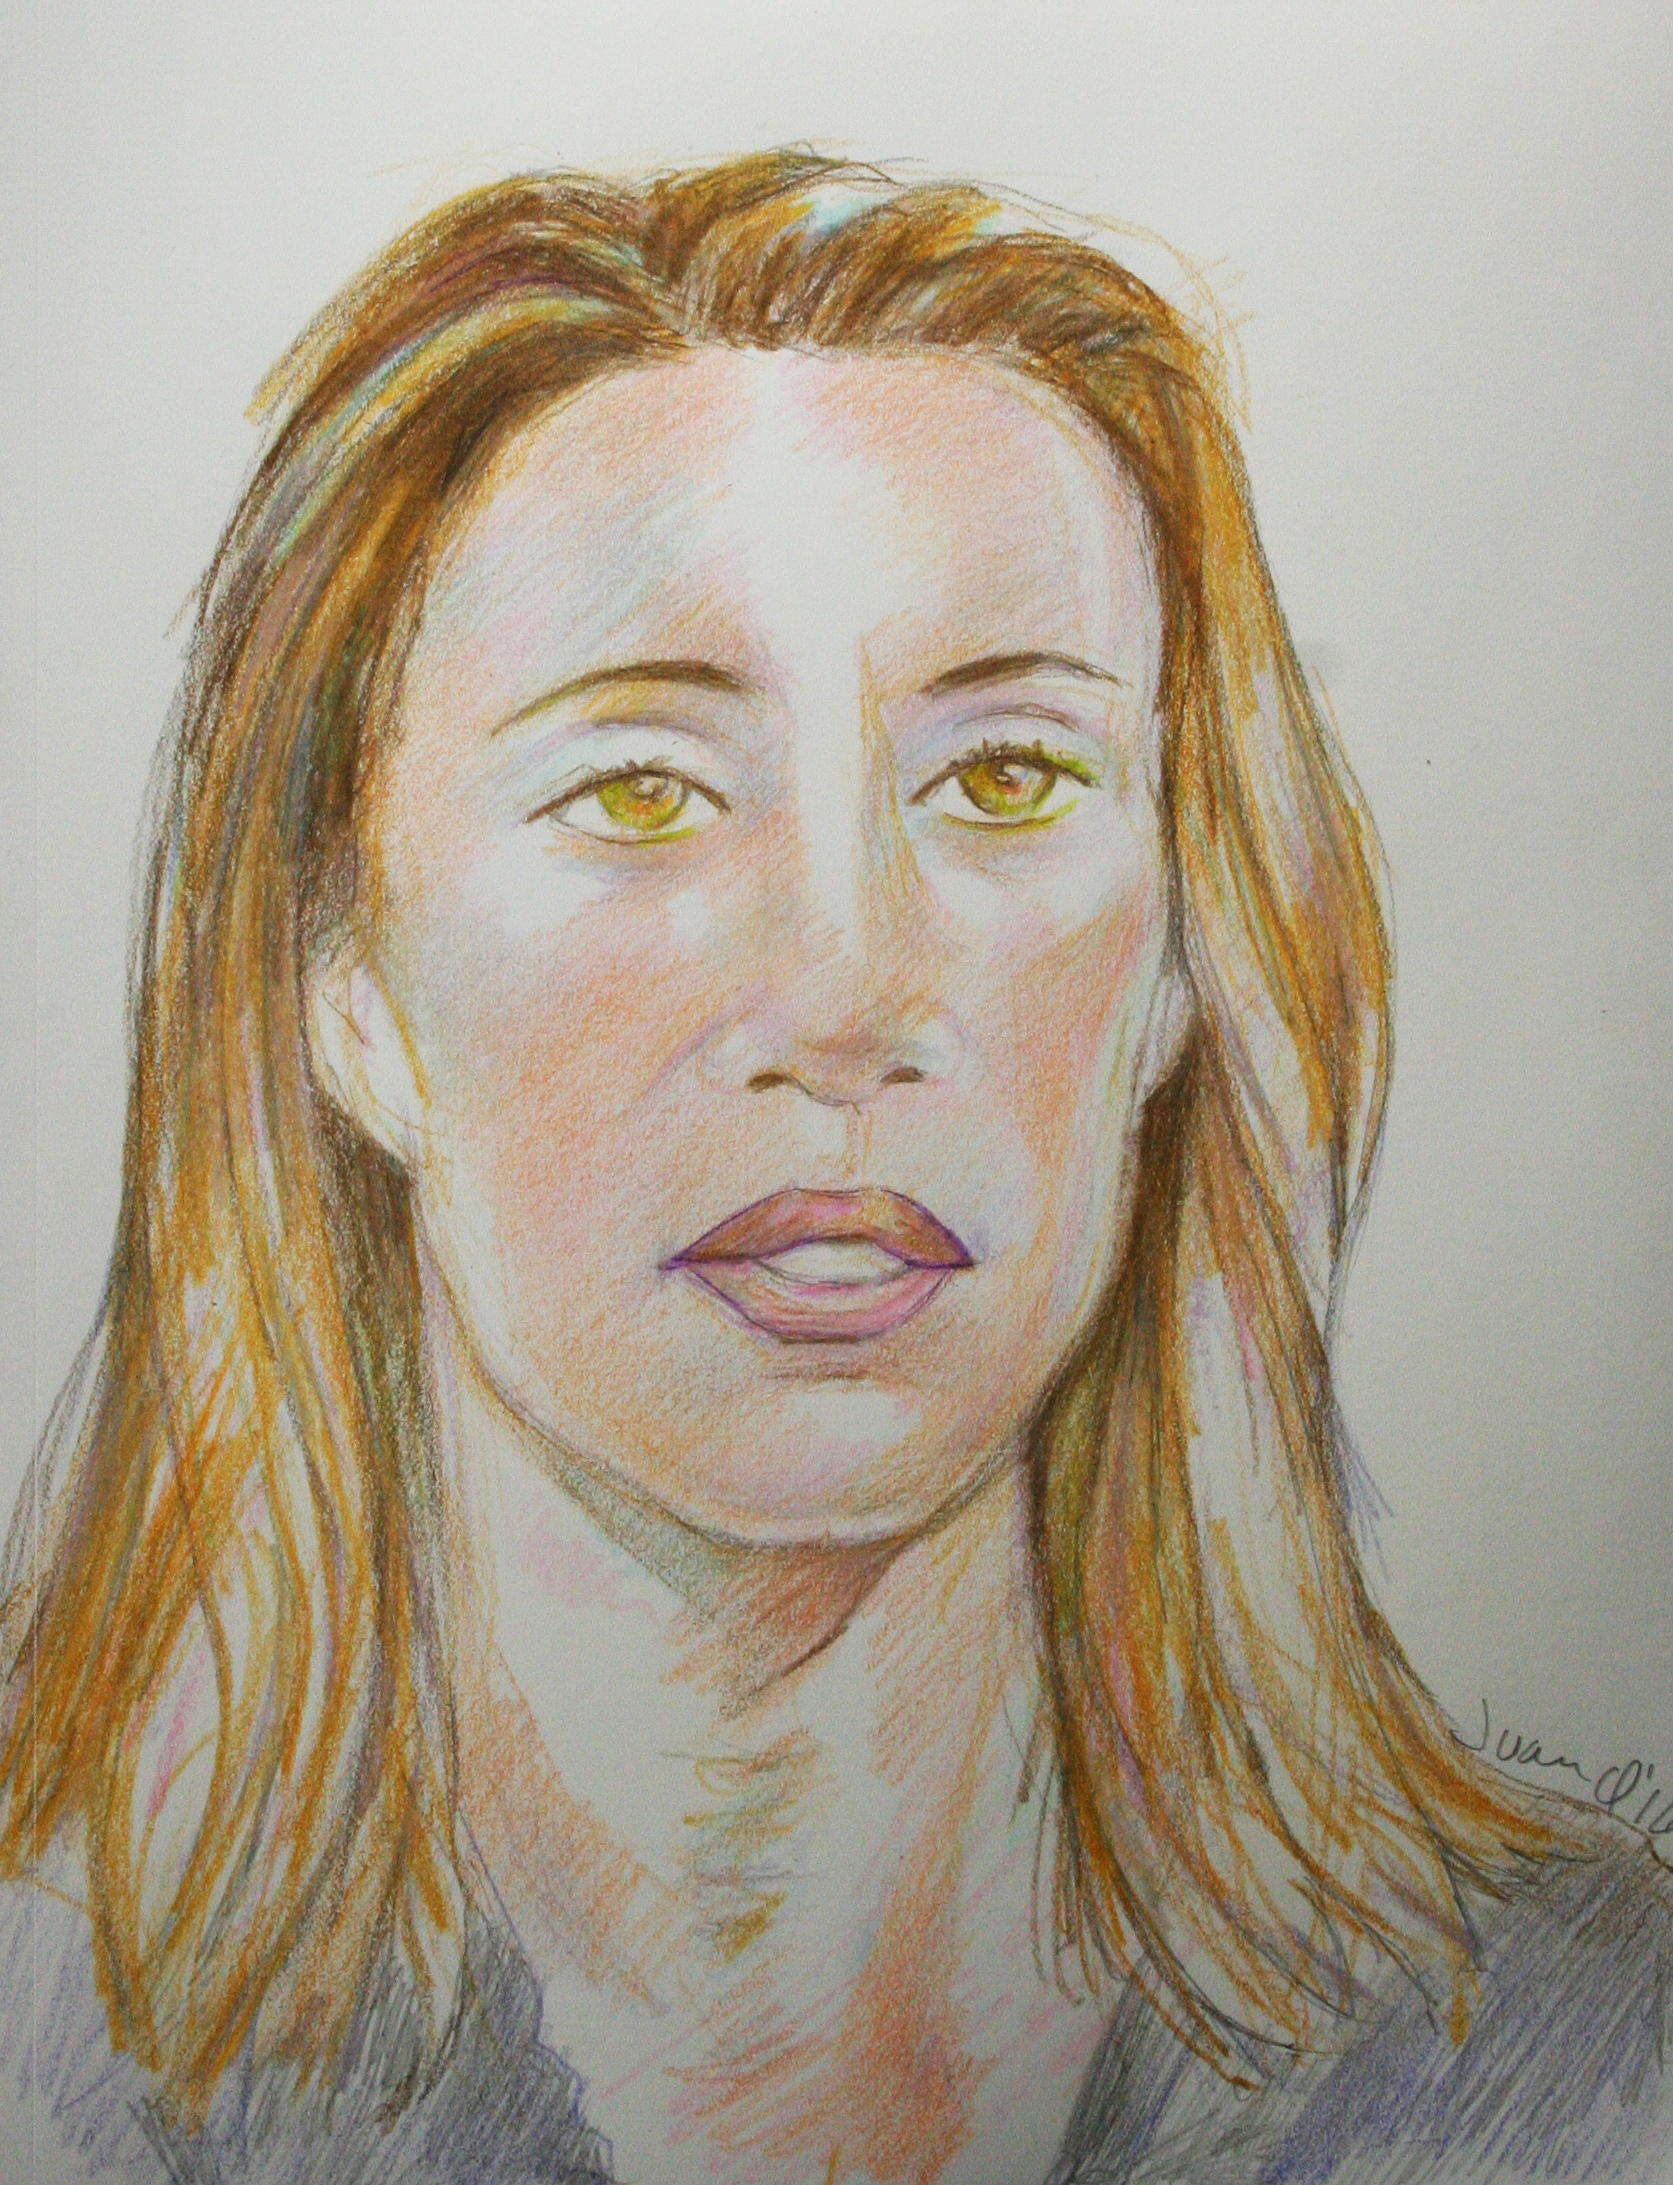 Juan Quirarte did this 3-hour colored pencil drawing.